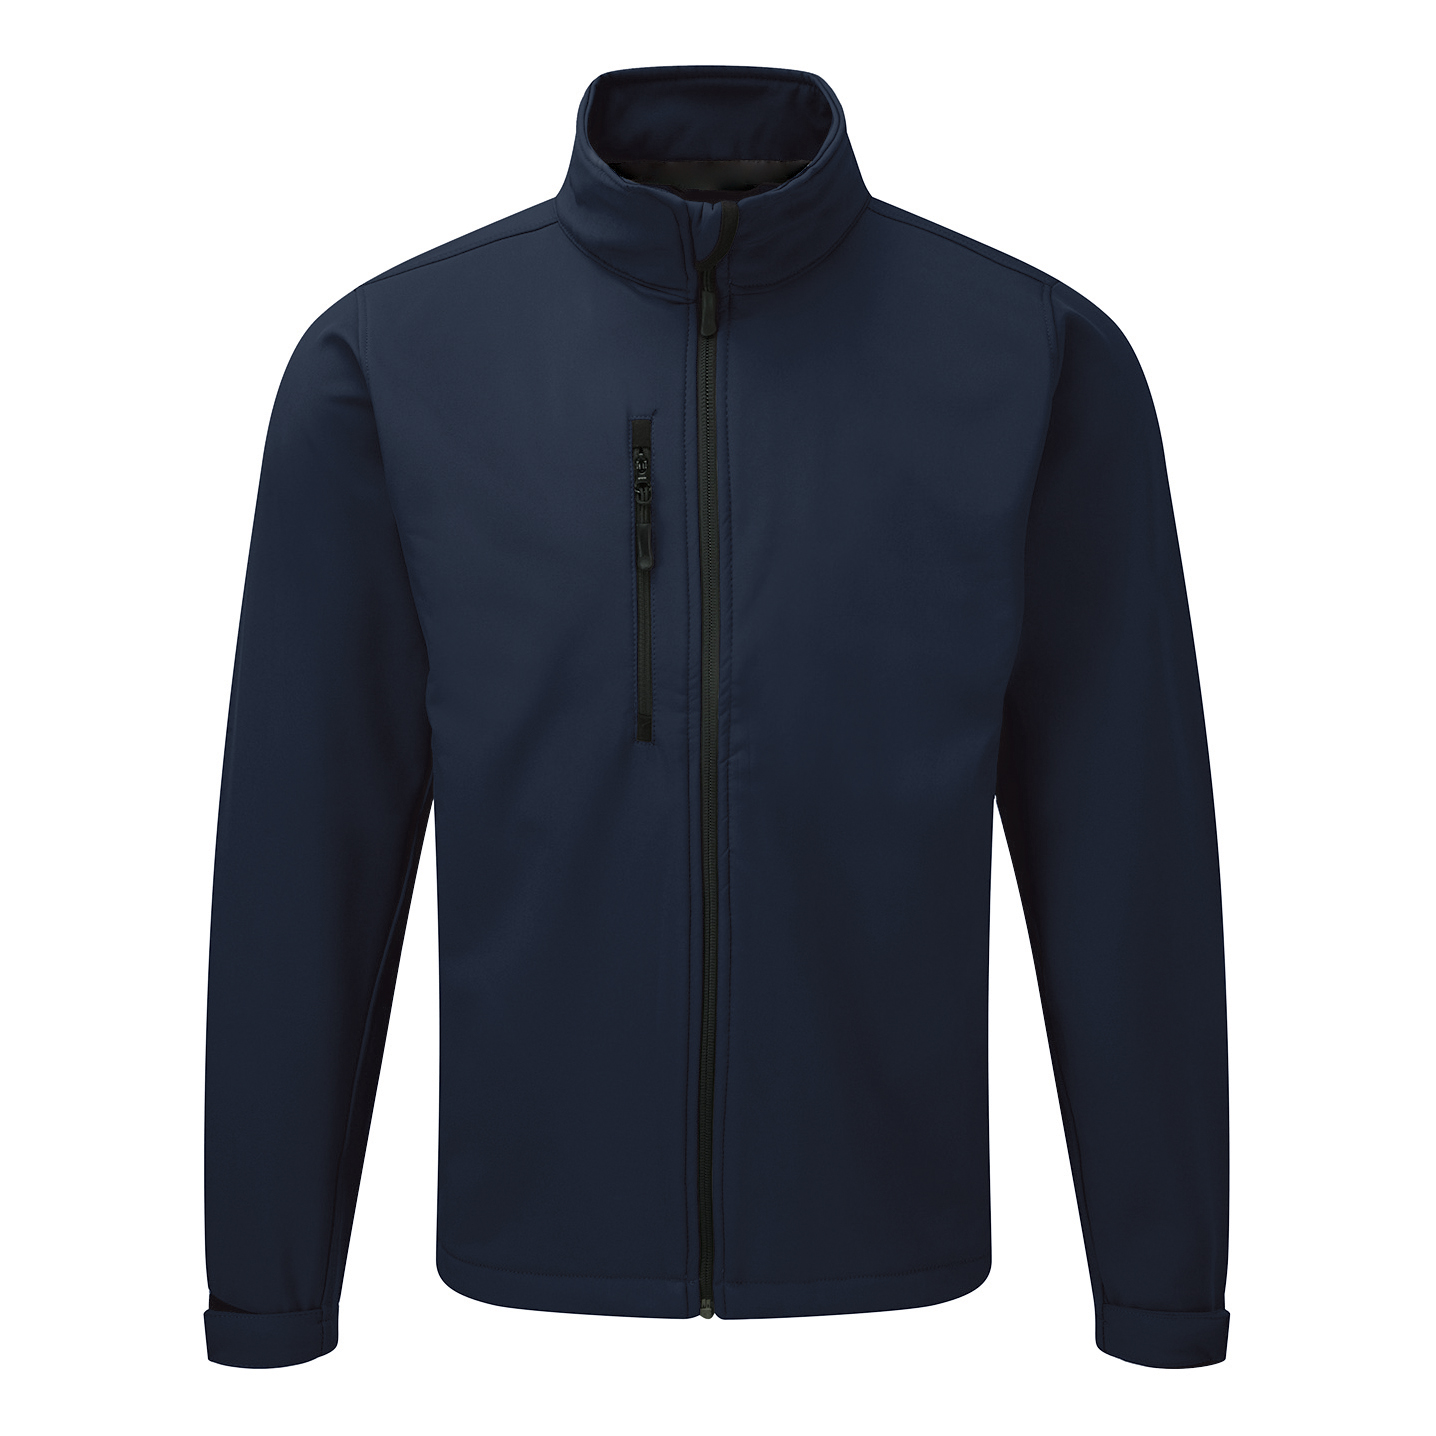 Jacket Soft Shell Water Resistant Breathable 320gsm Small Navy Blue